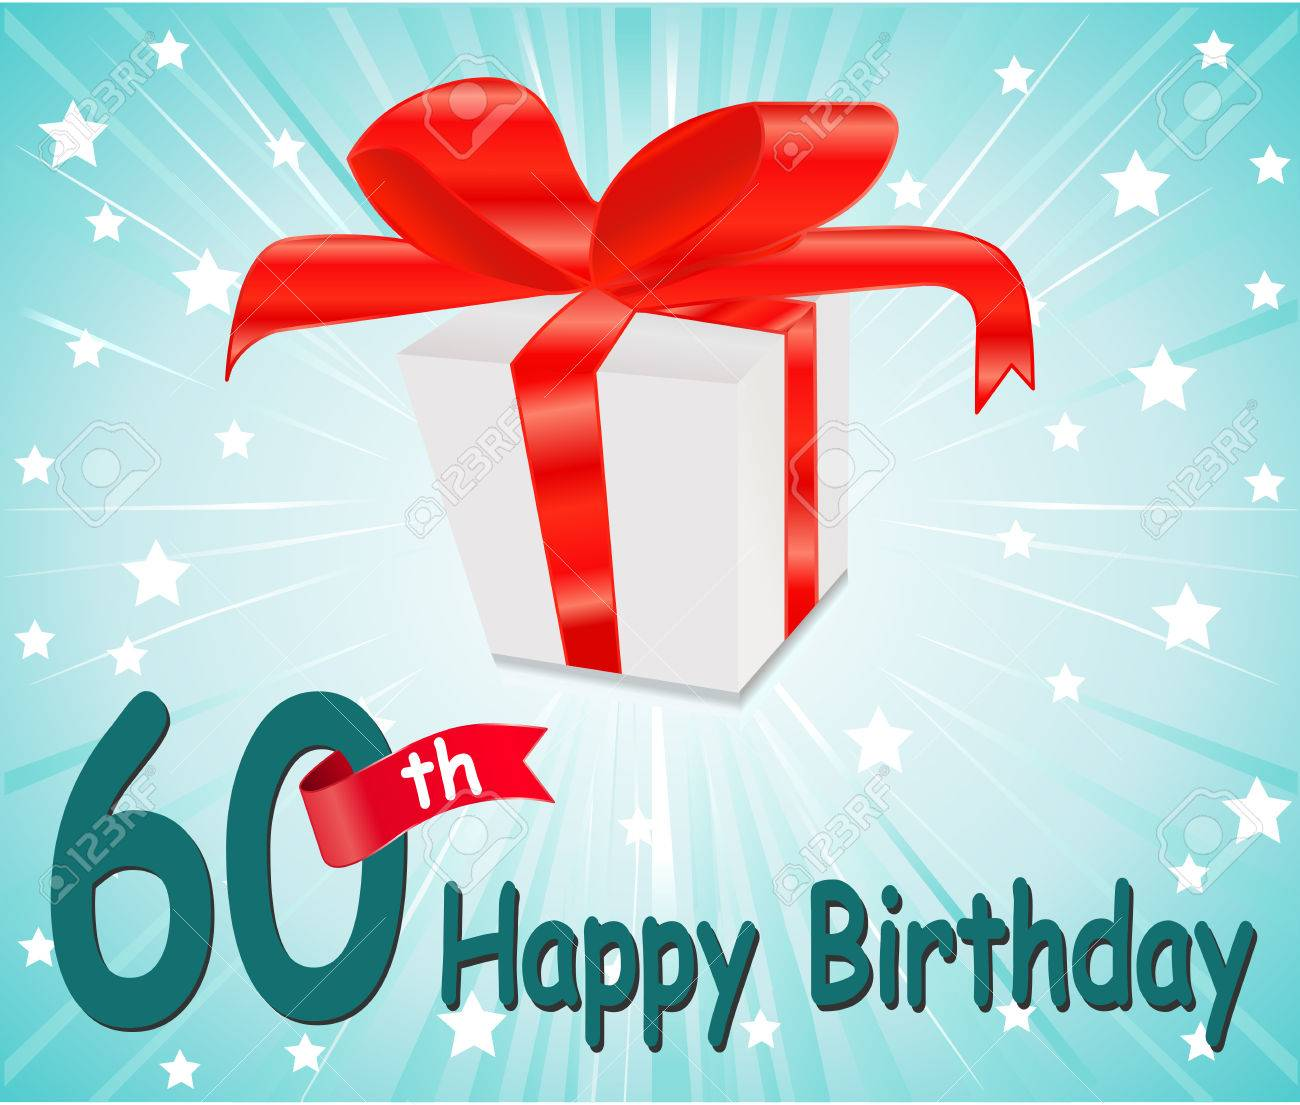 60 Year Happy Birthday Card With Gift And Colorful Background Stock Vector